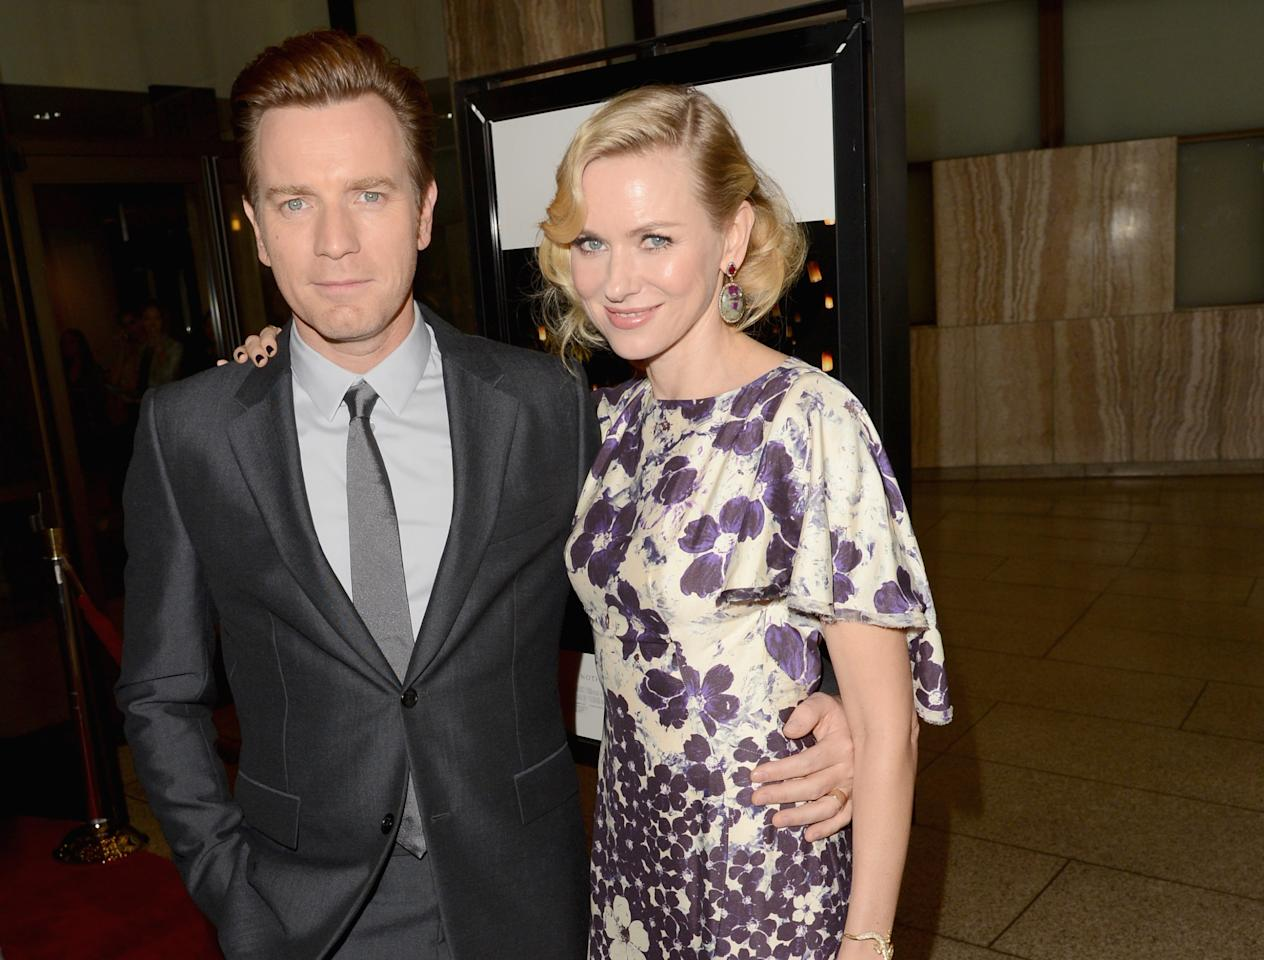 """HOLLYWOOD, CA - DECEMBER 10:  Actors Ewan McGregor (L) and Naomi Watts attend the Los Angeles premiere of Summit Entertainment's """"The Impossible"""" at ArcLight Cinemas Cinerama Dome on December 10, 2012 in Hollywood, California.  (Photo by Jason Merritt/Getty Images)"""